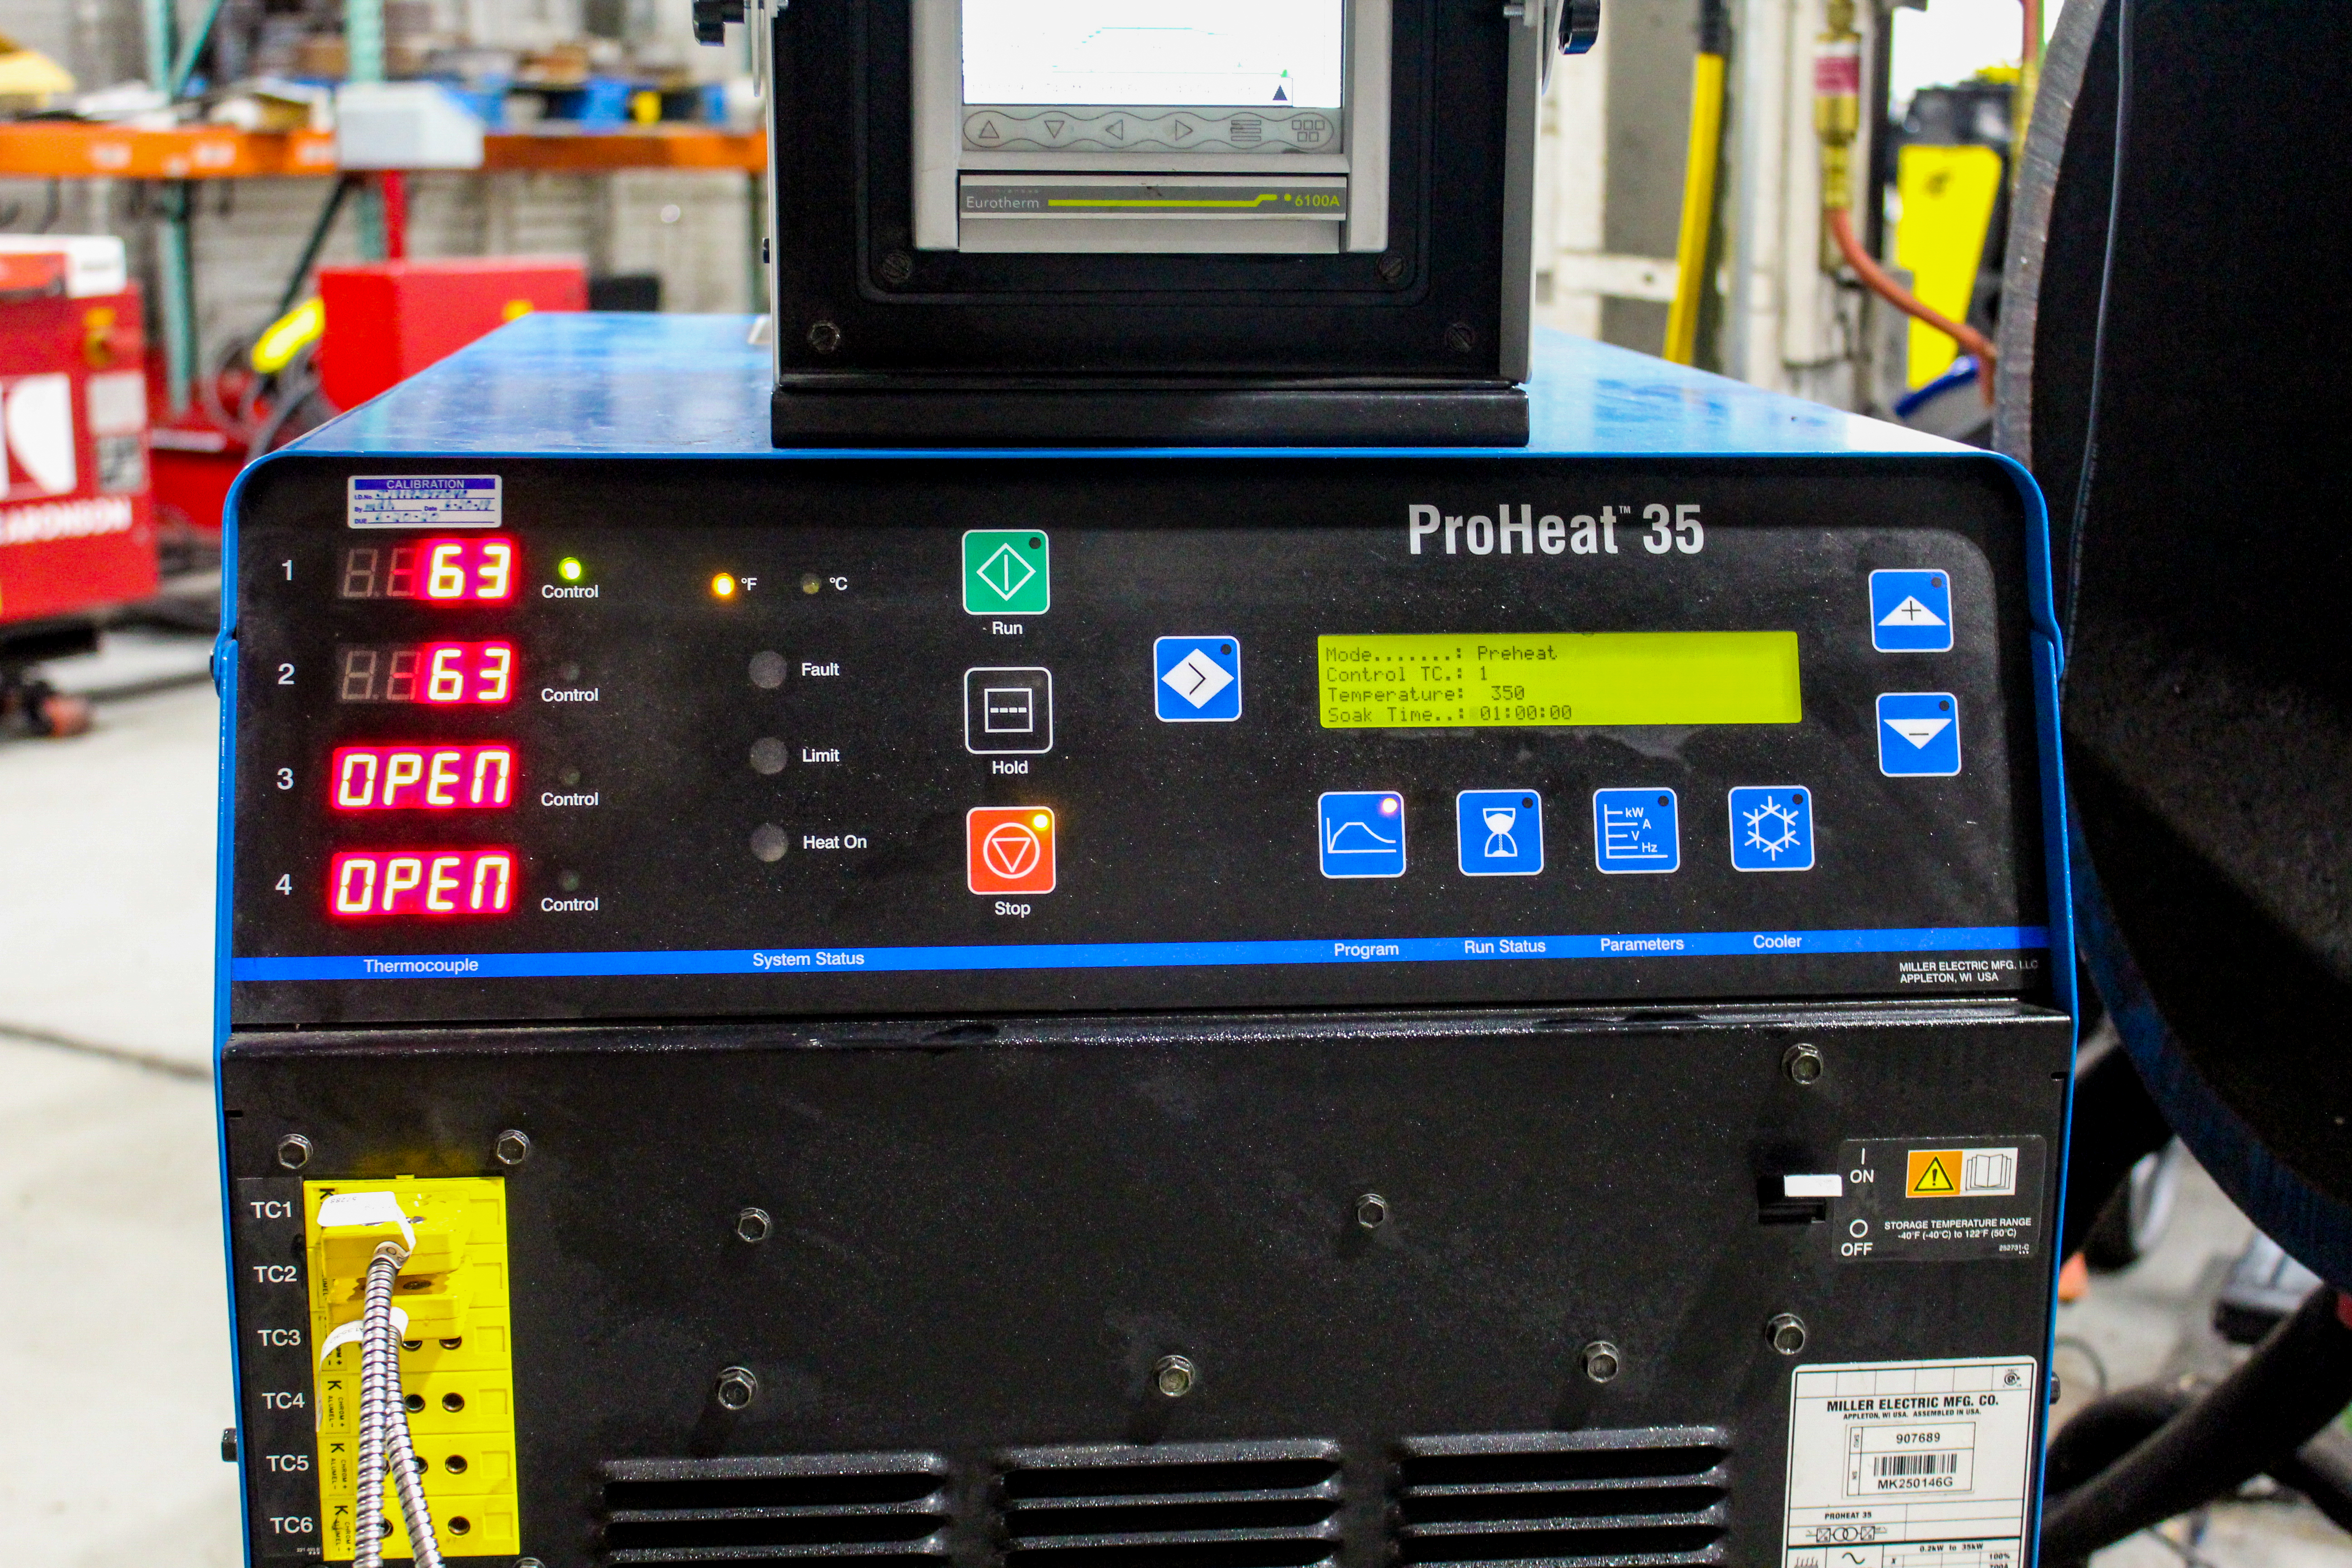 The Miller ProHeat 35 product interface